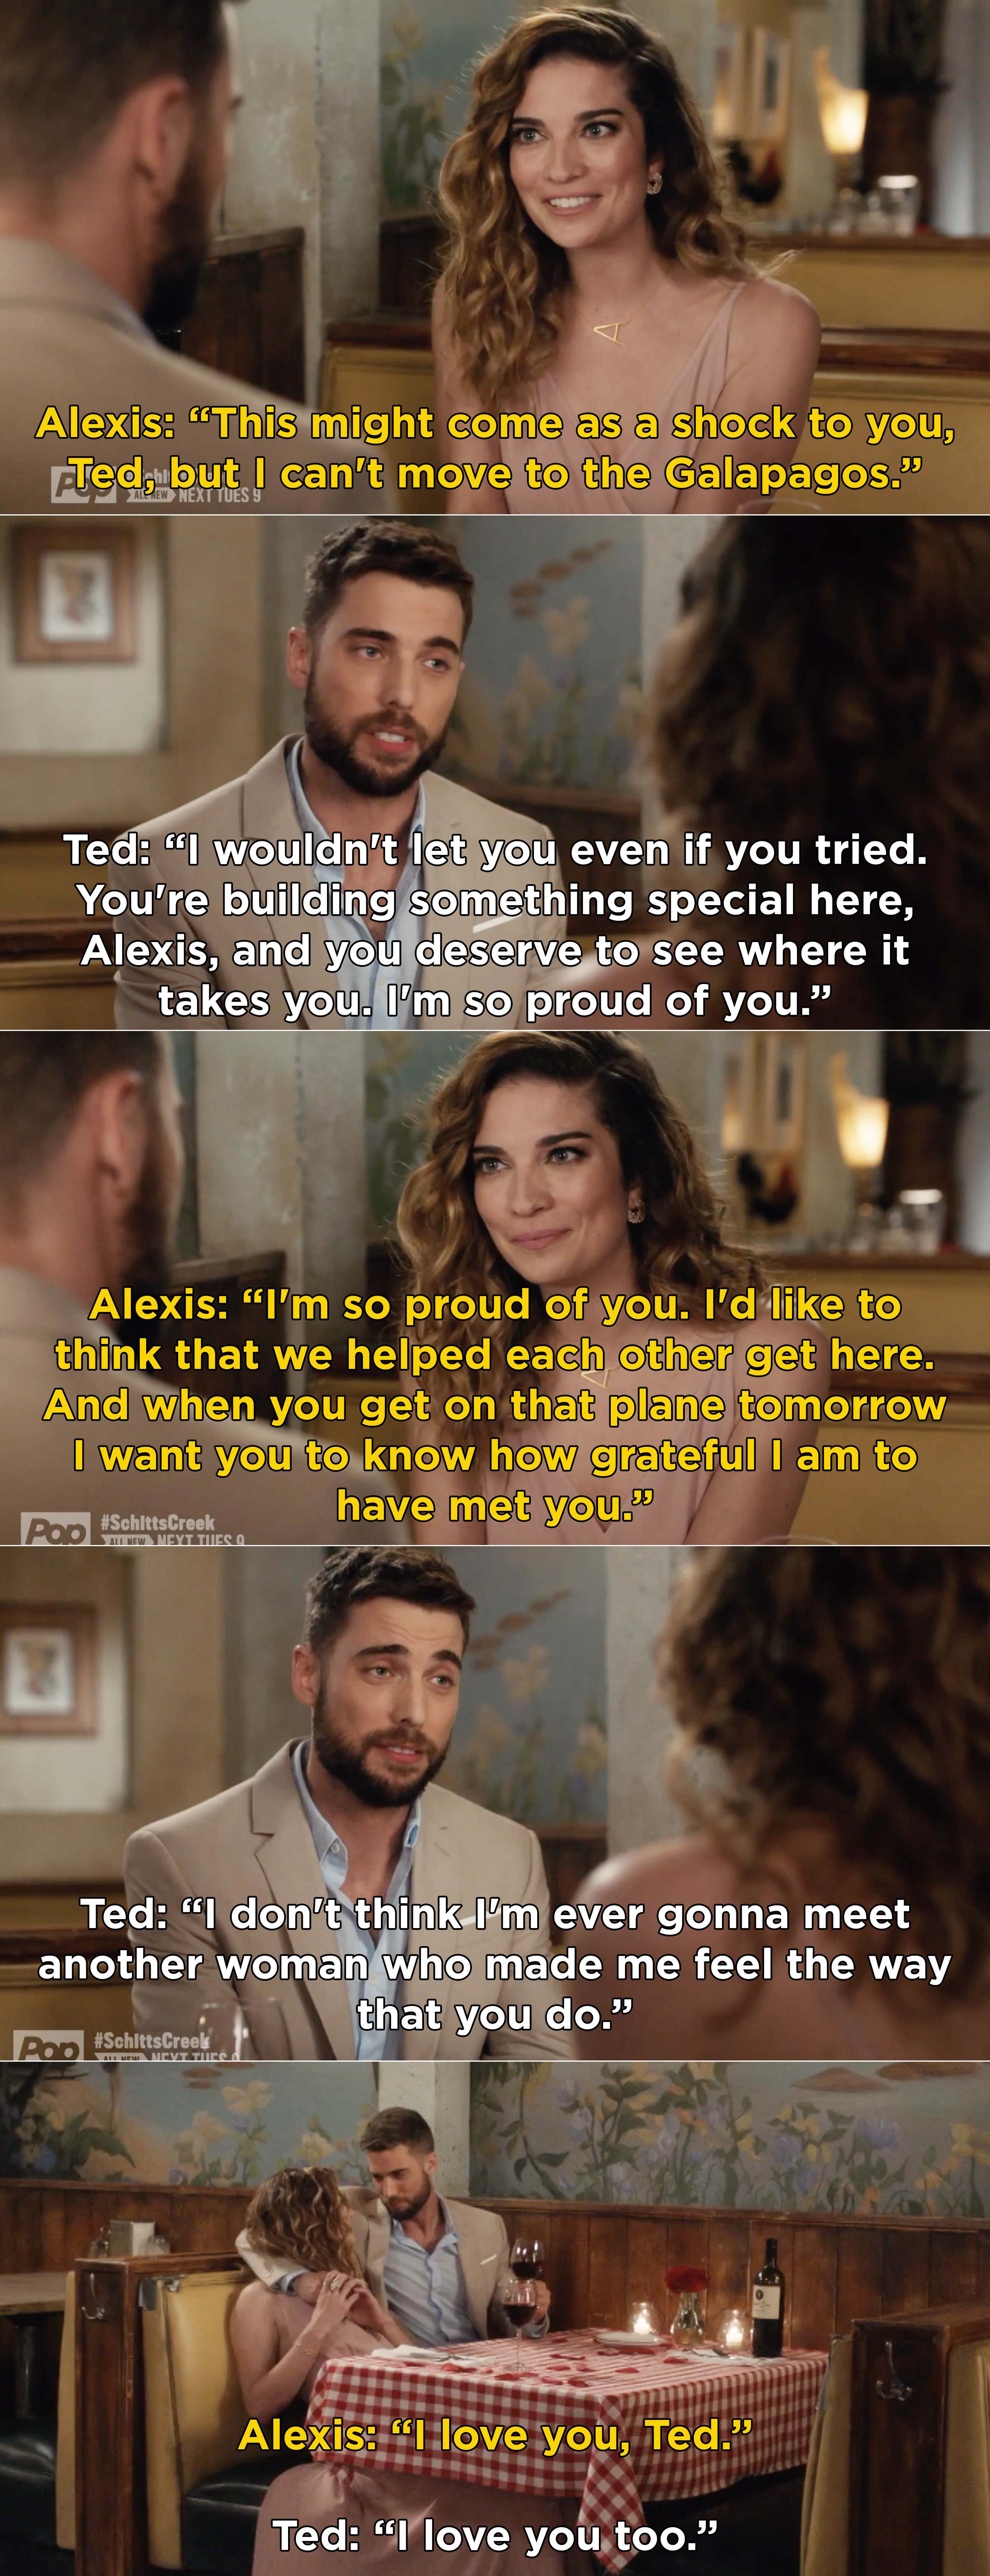 Alexis and Ted saying that they are proud of each other